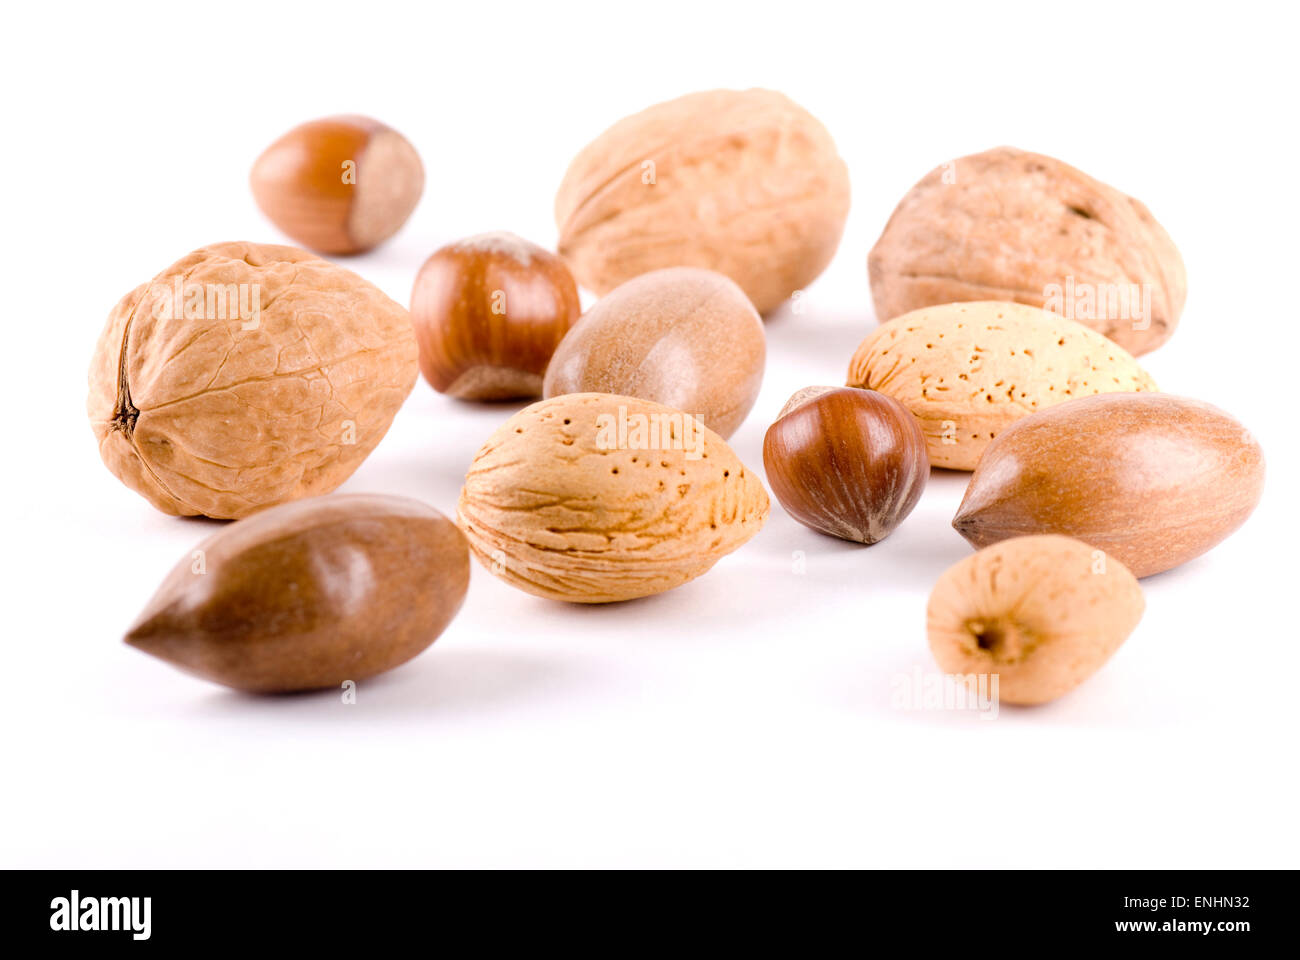 Mixed nuts close up on white background. - Stock Image